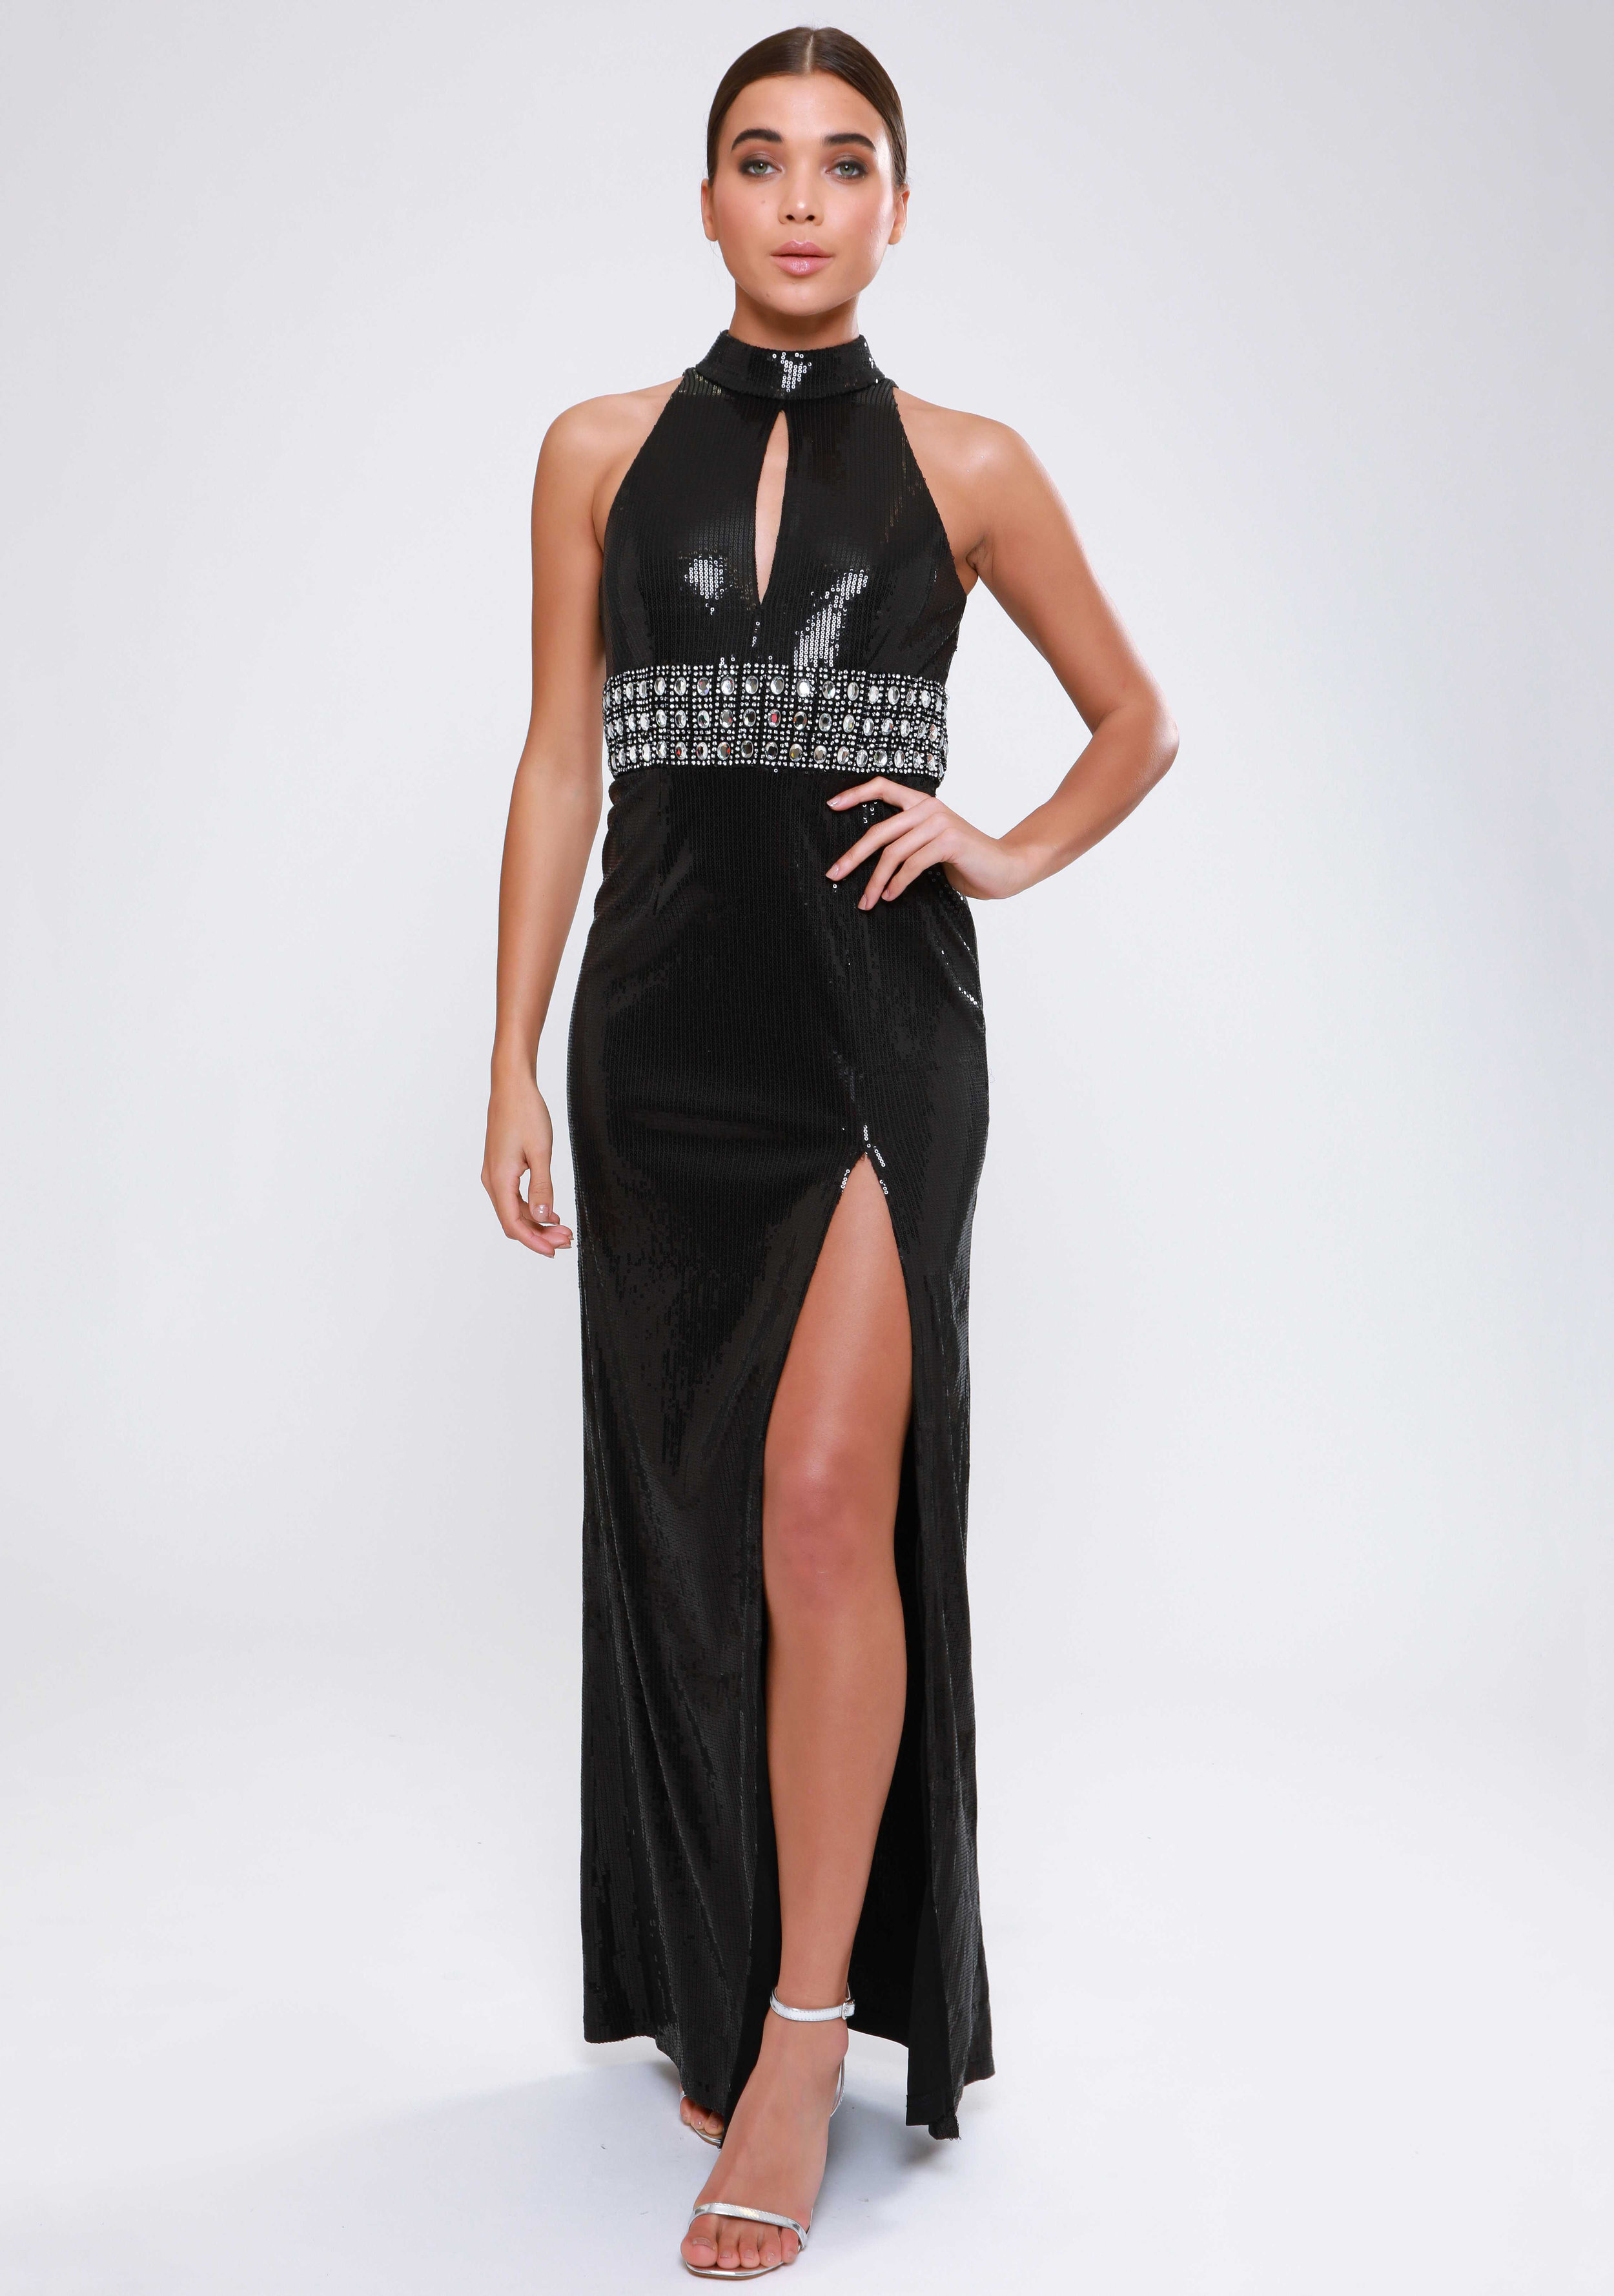 Sequin Maxi Dress with  Embellished Waist   £100.00